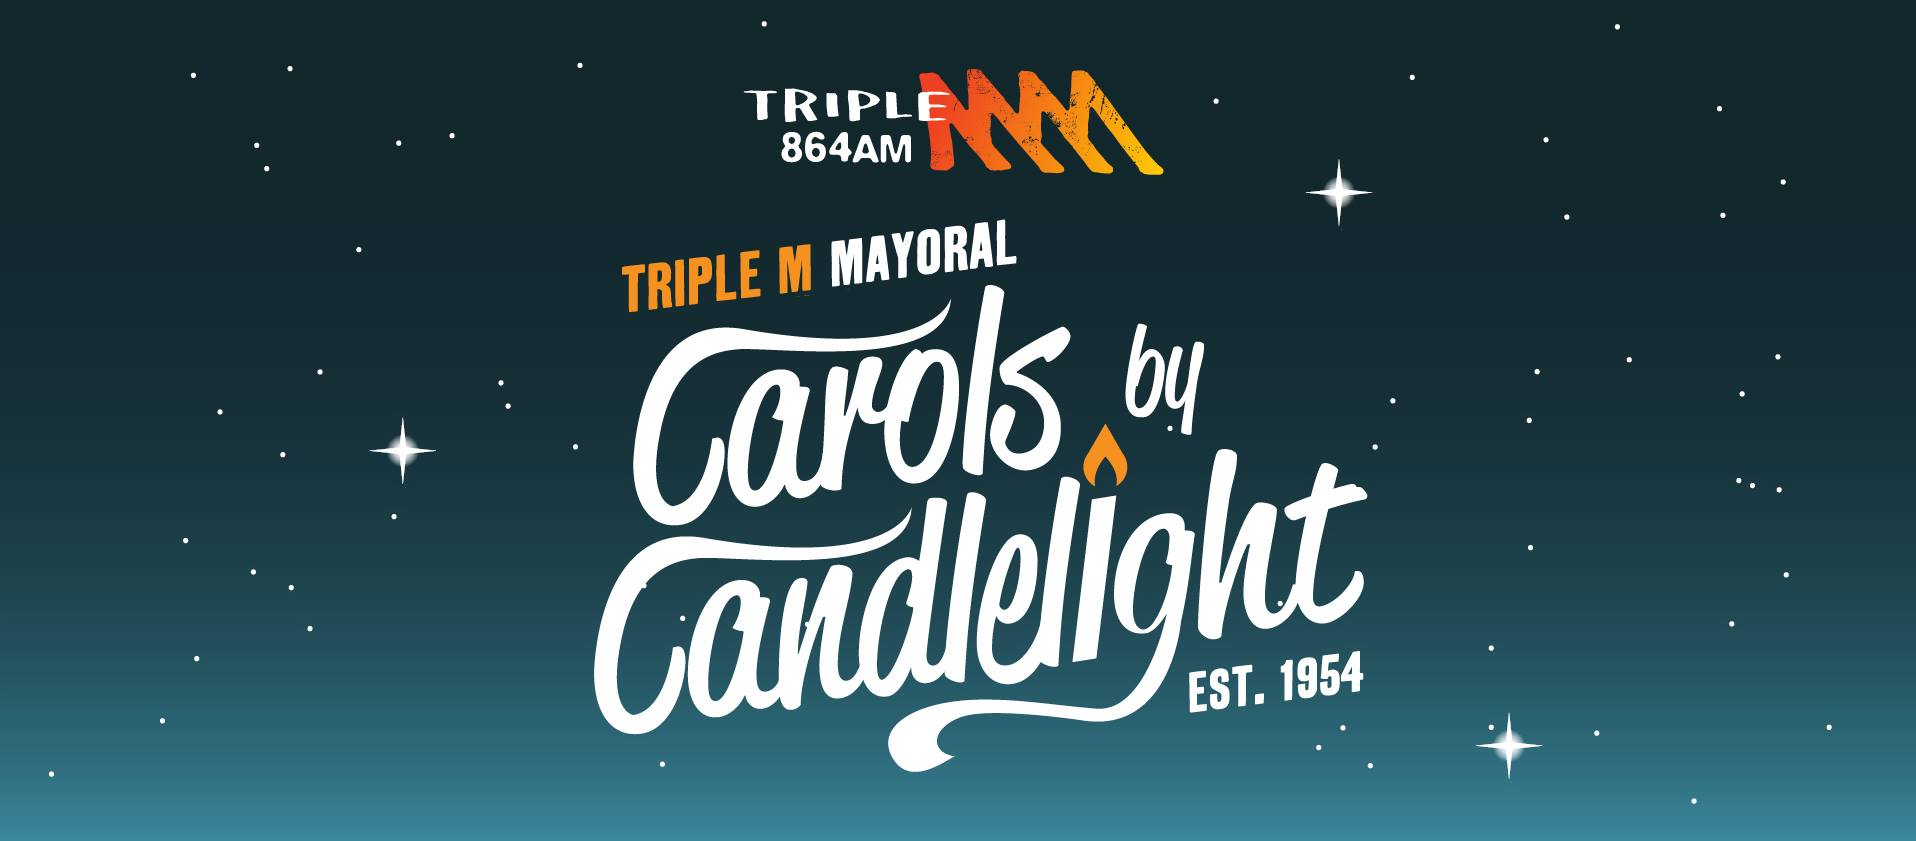 Triple M Mayoral Carols by Candlelight